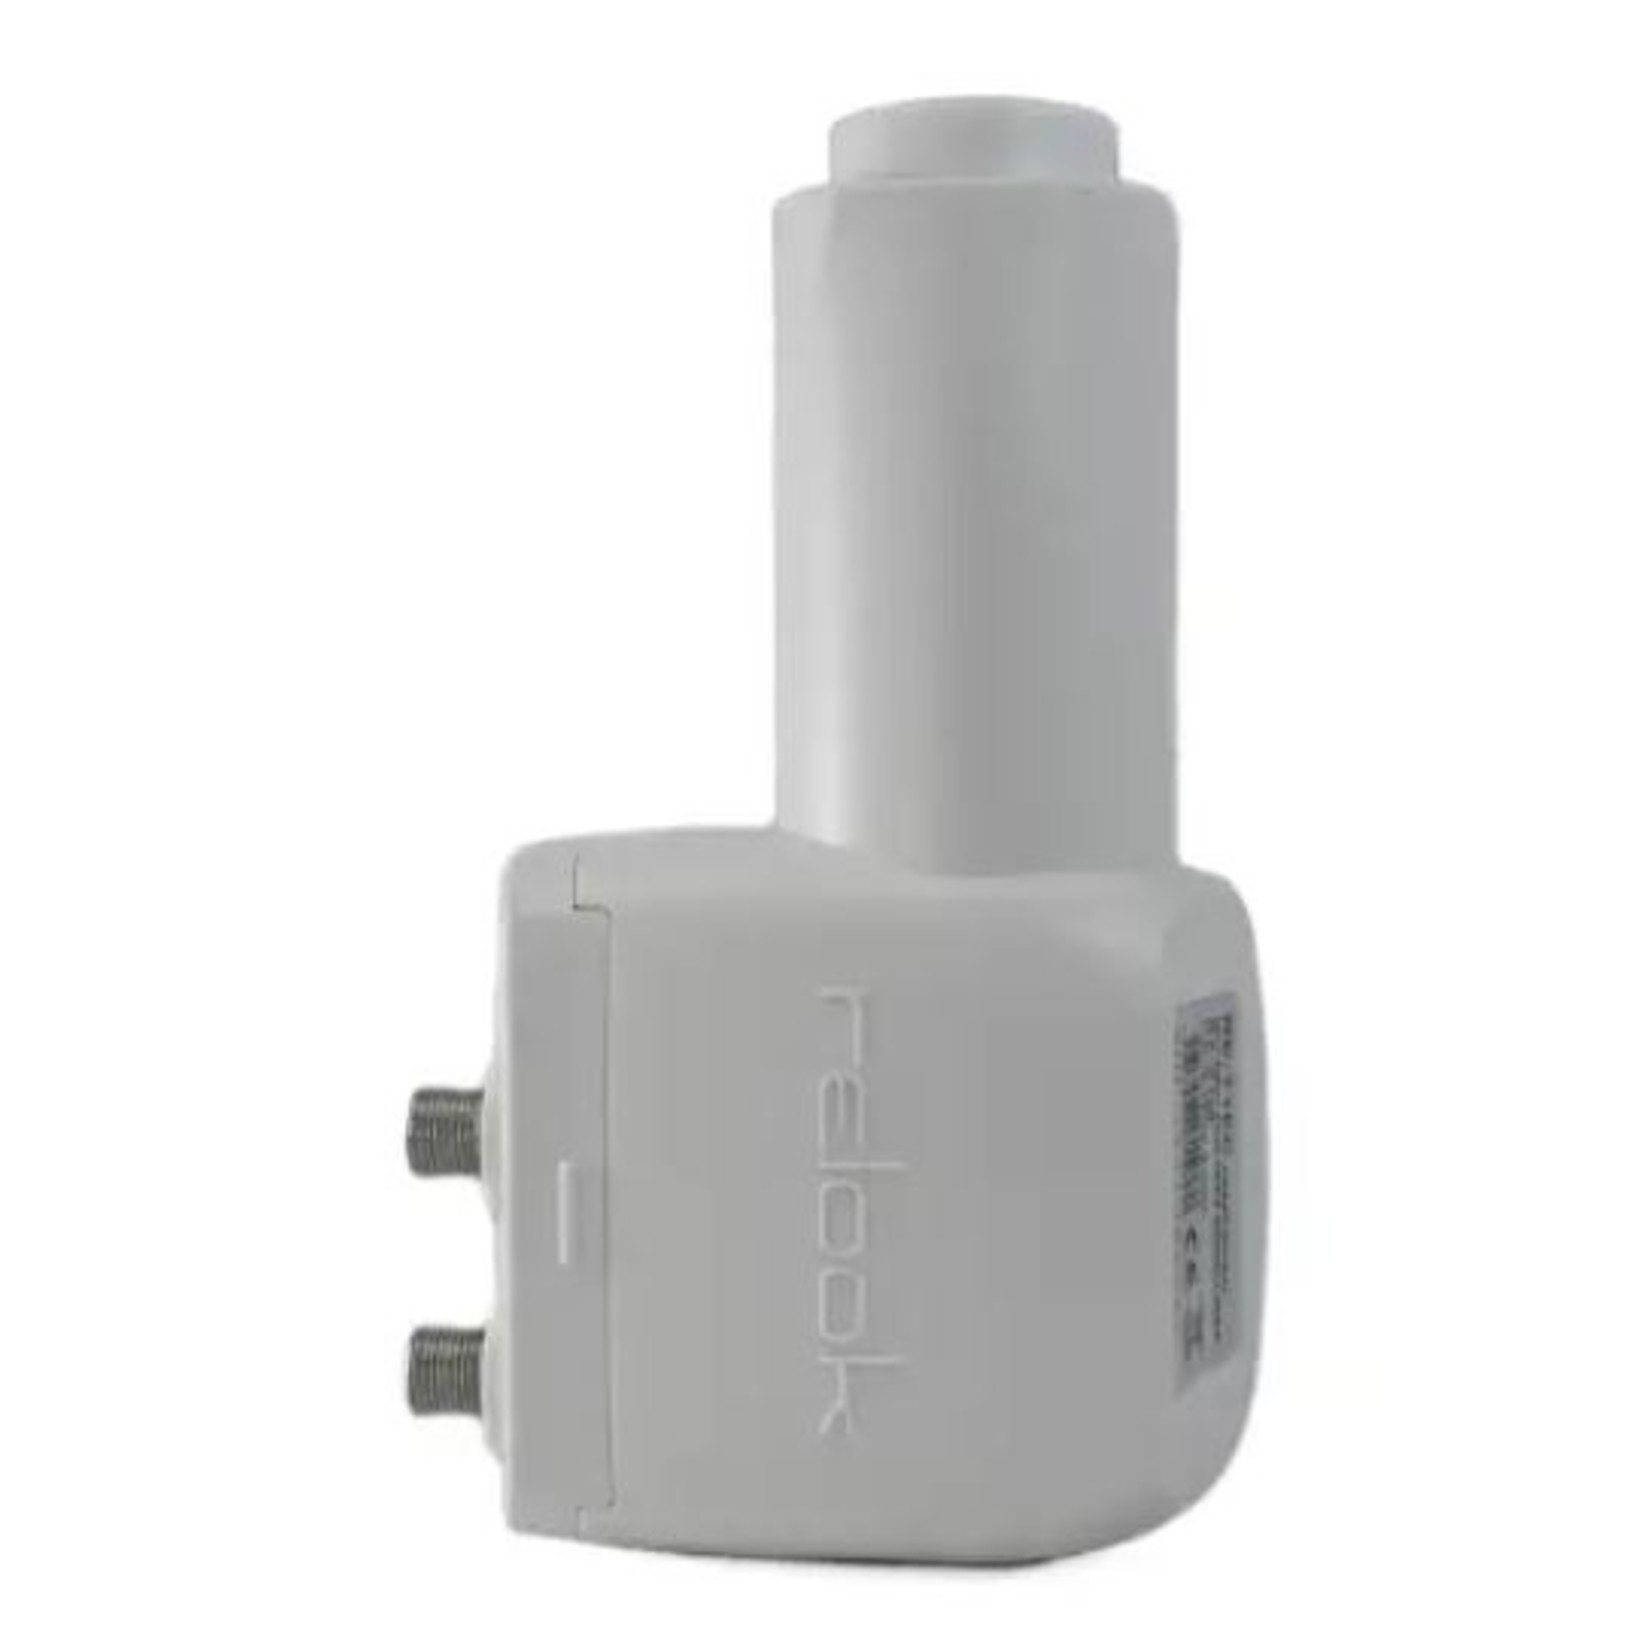 RELOOK LNB RELOOK TWIN SLIM FEED EASY CONNECT 40 mm - 0.1db